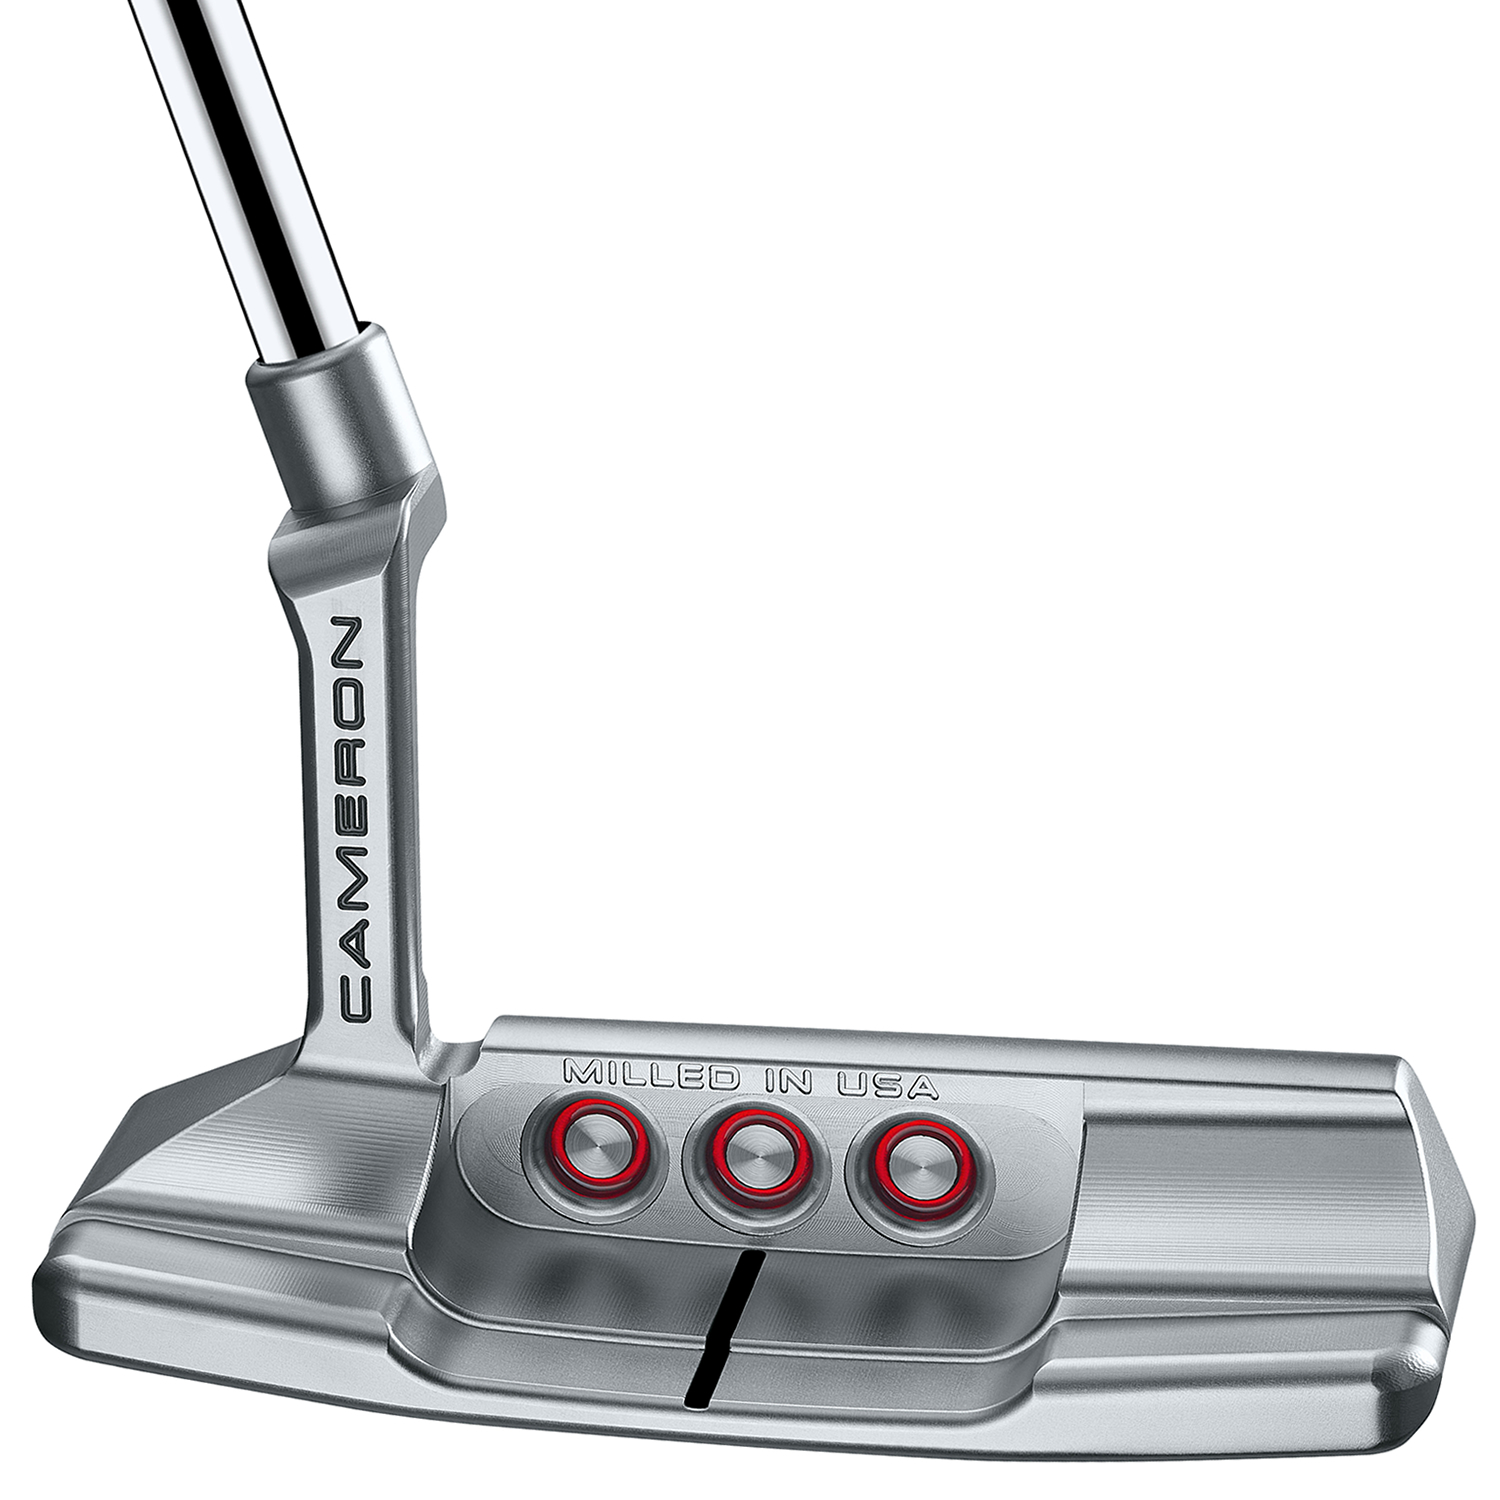 Scotty Cameron Special Select Squareback 2 Golf Putter